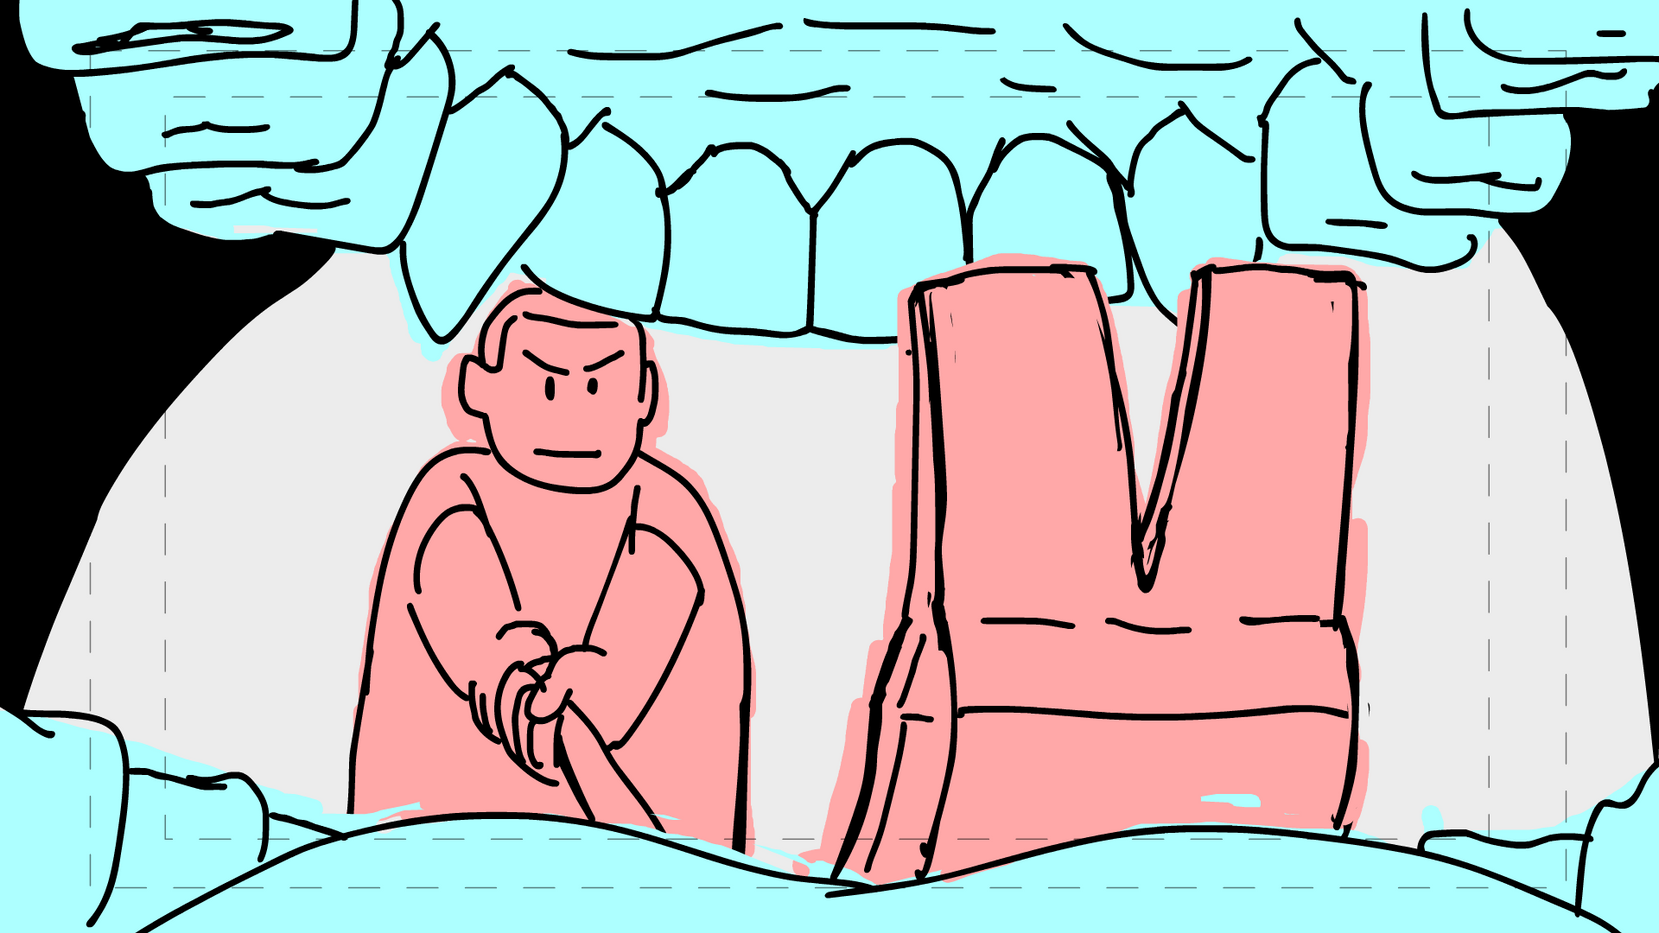 Storyboards_06_0246.png